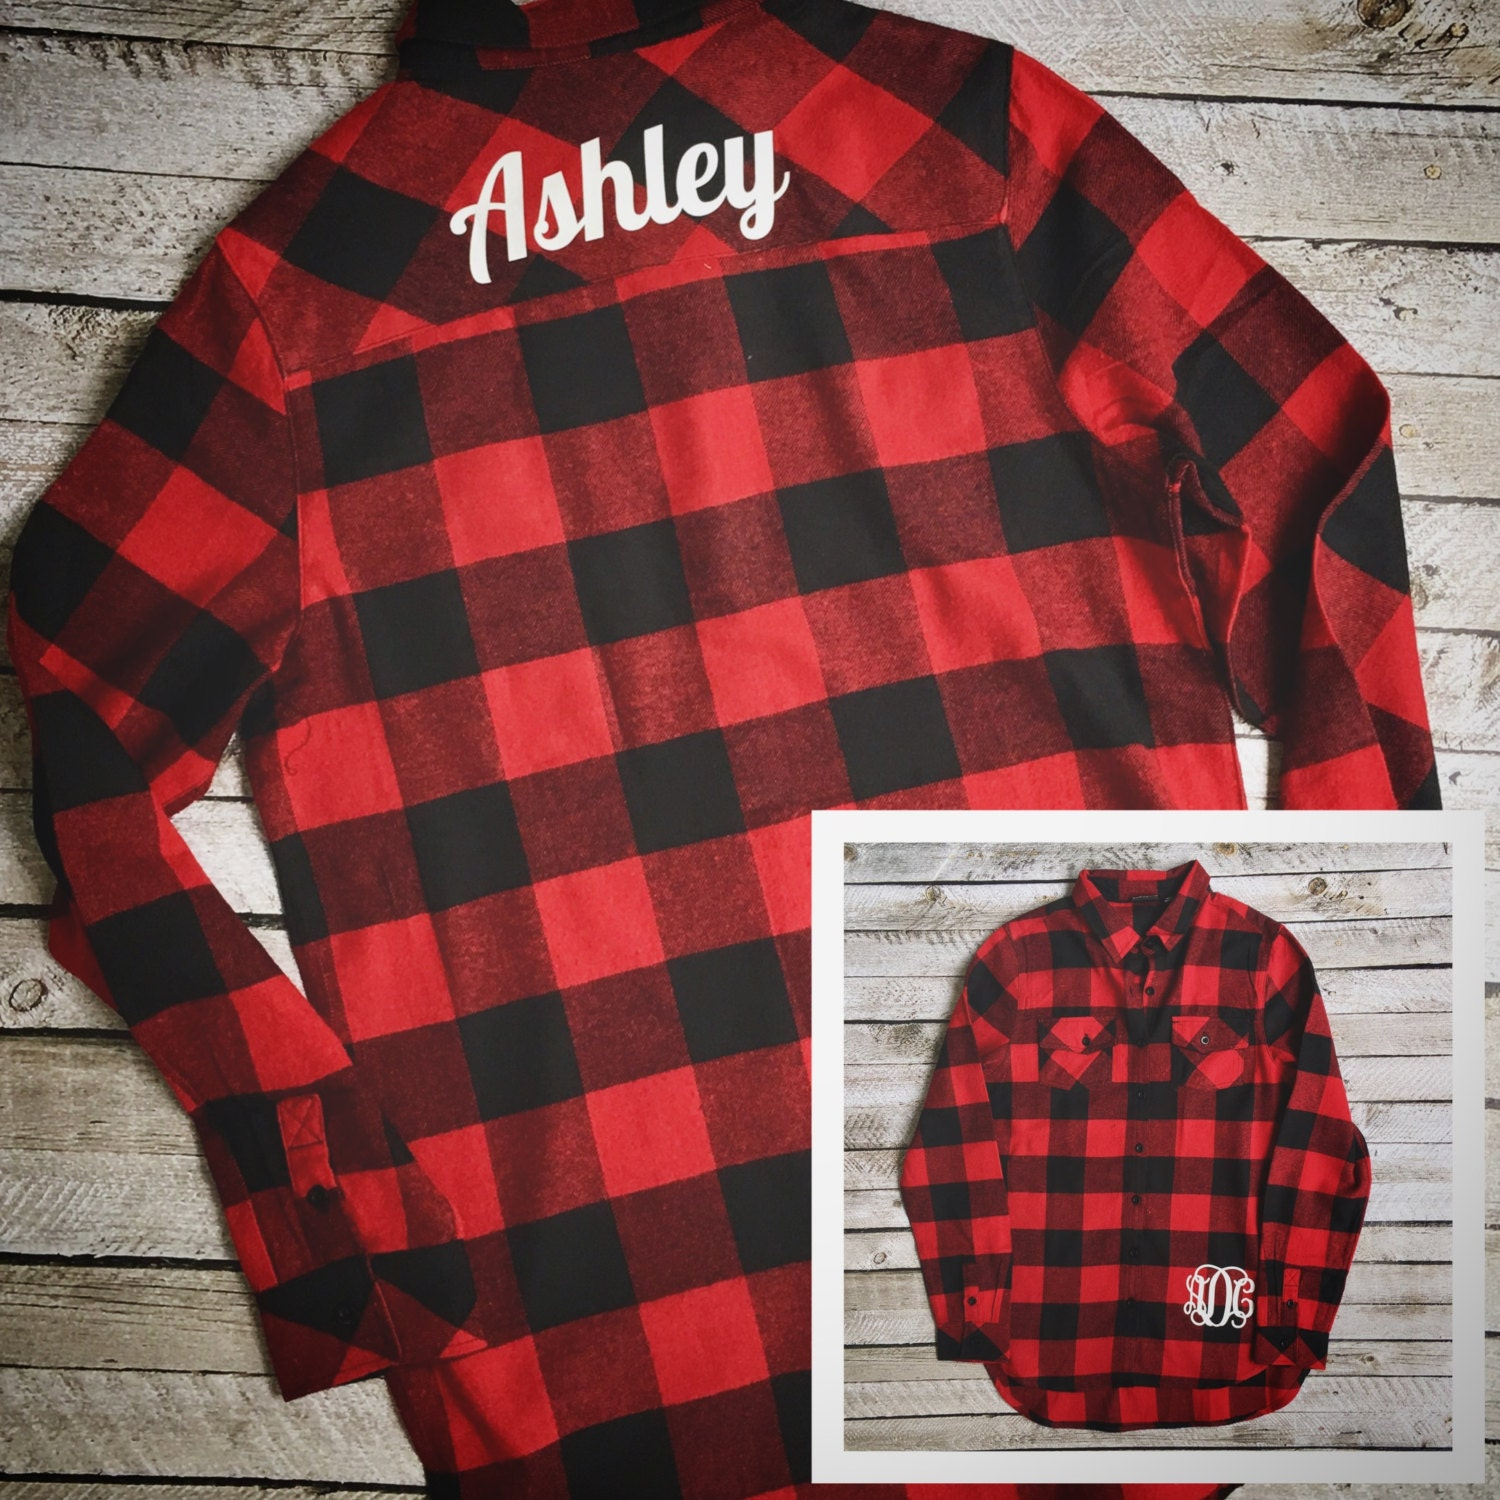 monogrammed flannel shirts  monogrammed buffalo plaid flannel shirts  monogrammed shirts